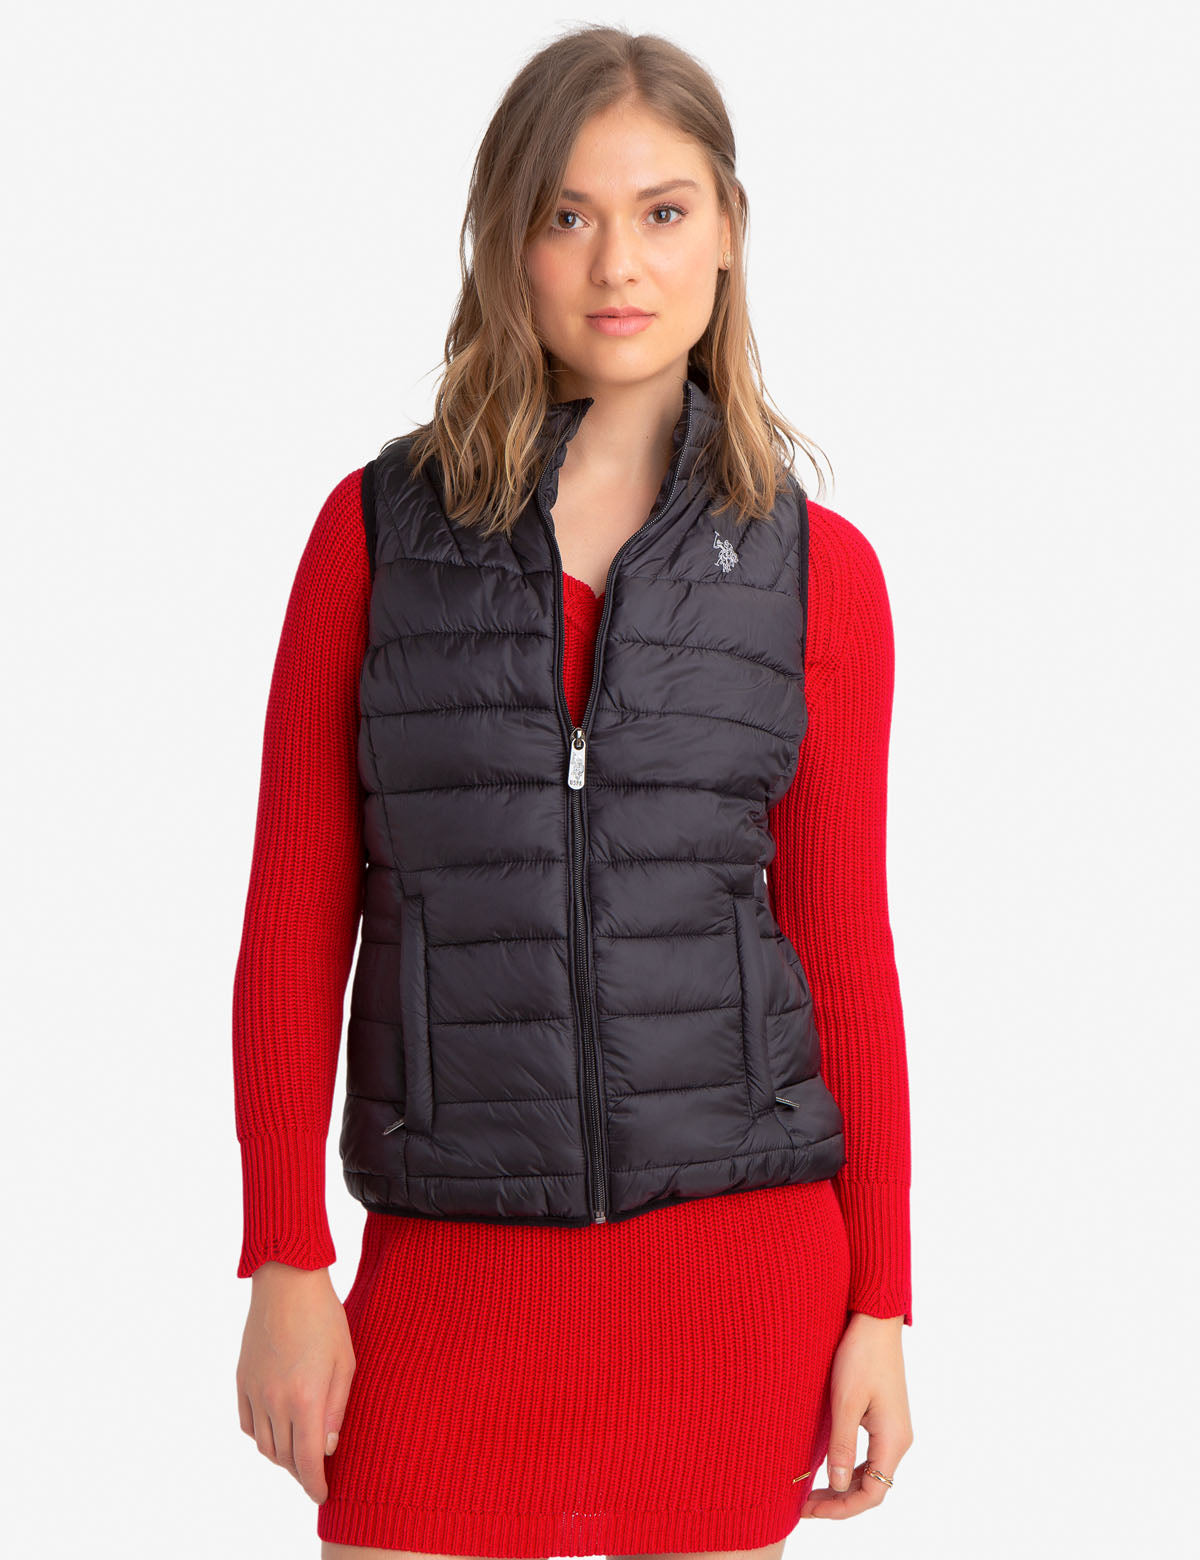 CHEVRON PUFFER VEST WITH SIDE POCKETS